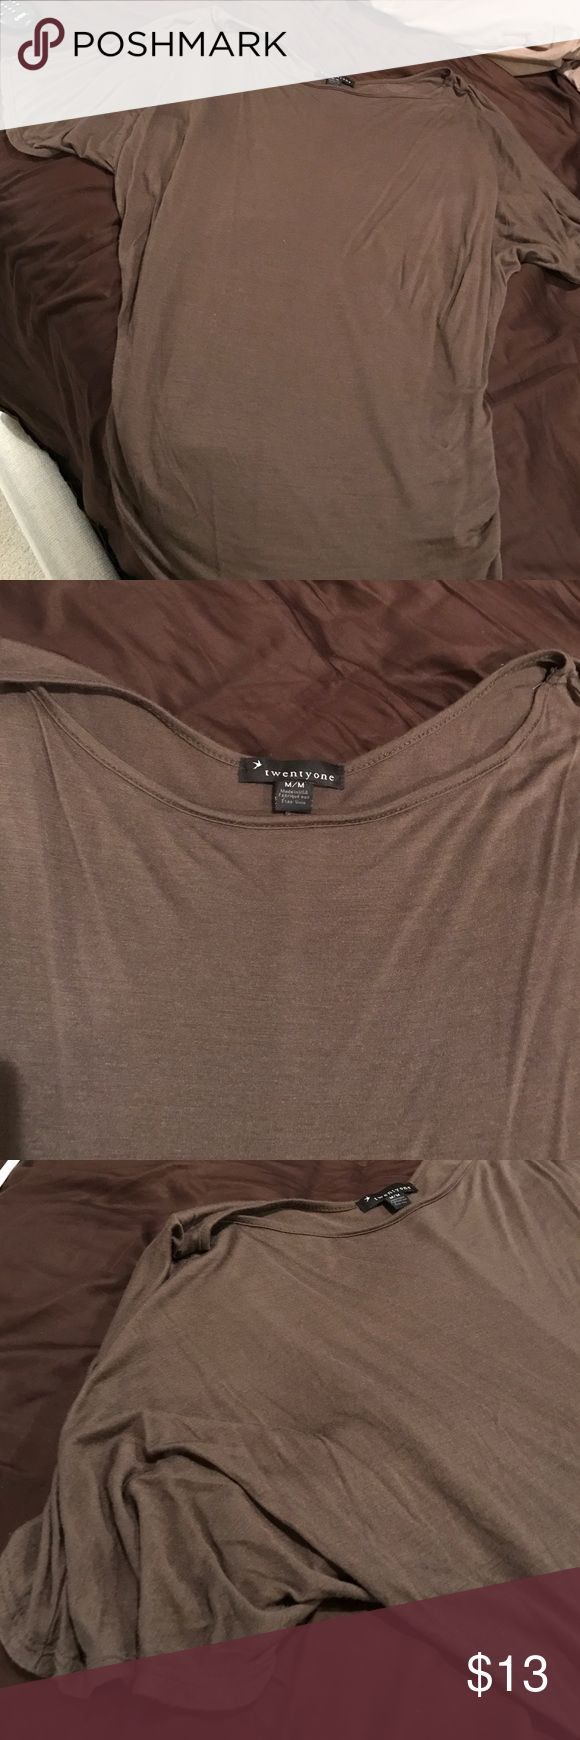 Forever 21 hunter green short sleeved top Gorgeous dark hunter green tshirt with cinching on each side of shirt near waist. Fits looser on stomach area. Top shows off one shoulder slightly. Worn once. Excellent condition. Forever 21 Tops